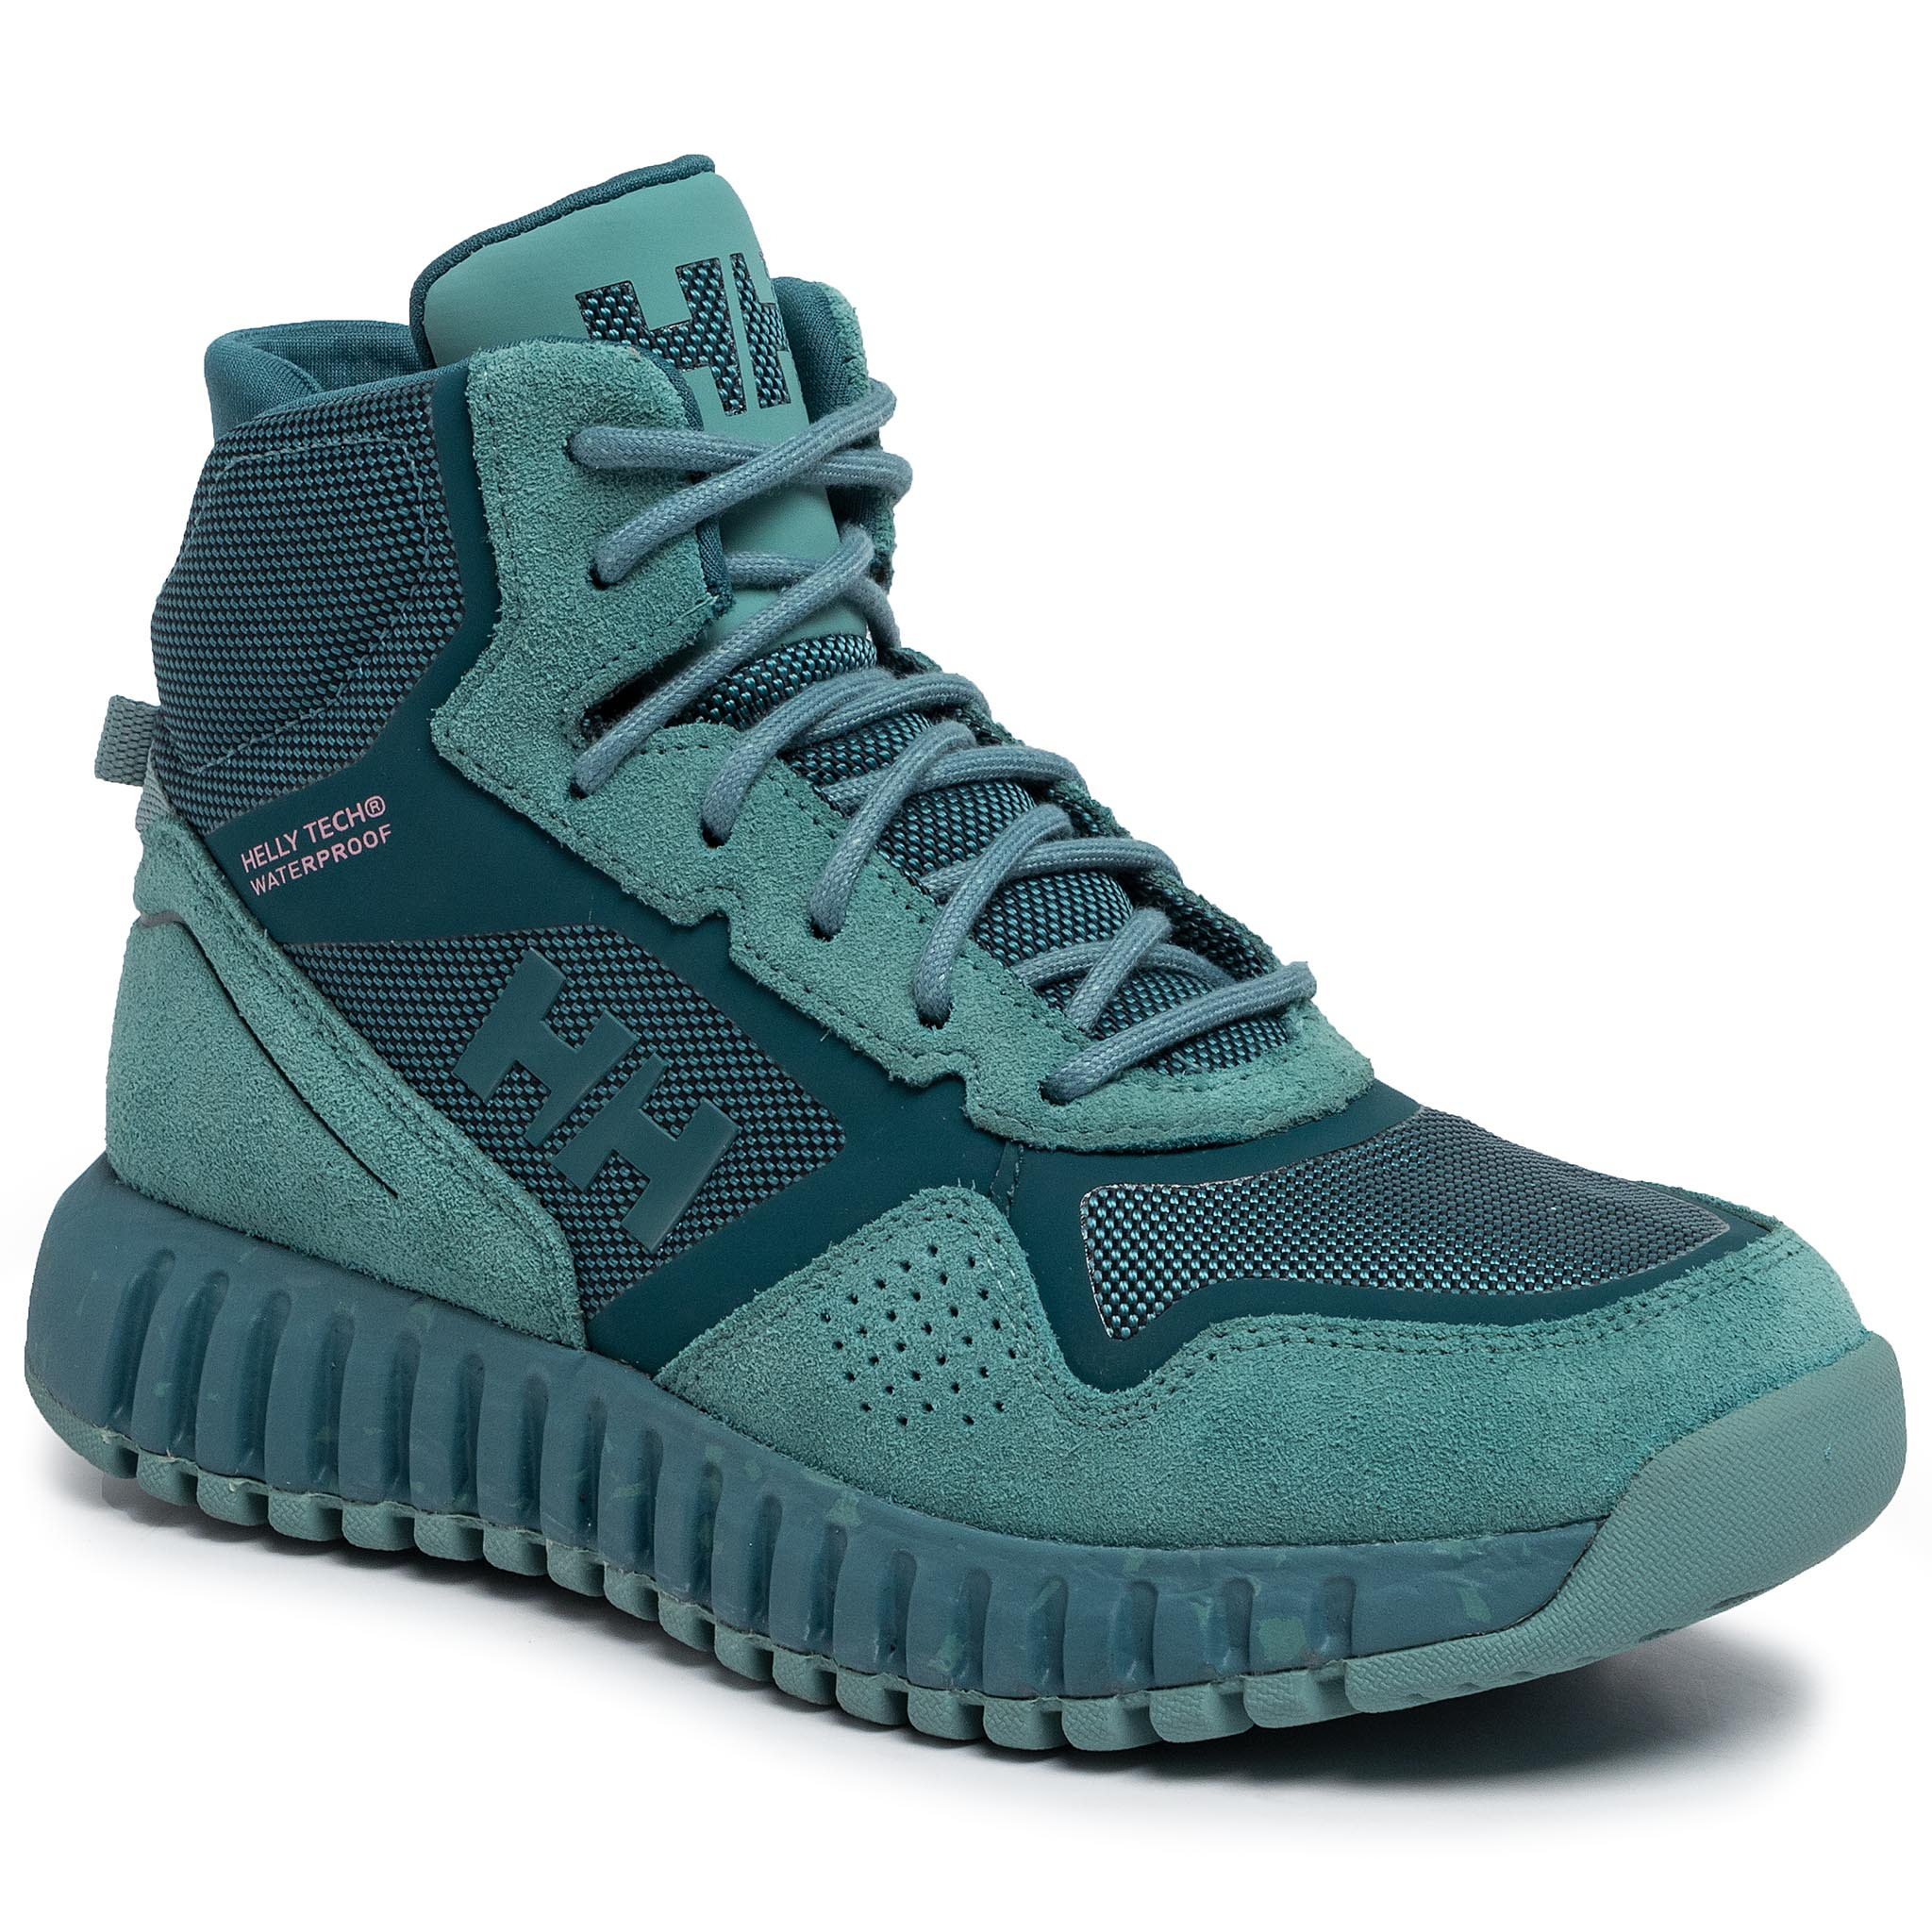 Trekkings Helly Hansen - Monashee Ullr Ht 114-46.443 Jade/Washed Teal/Flamingo Pink imagine epantofi.ro 2021